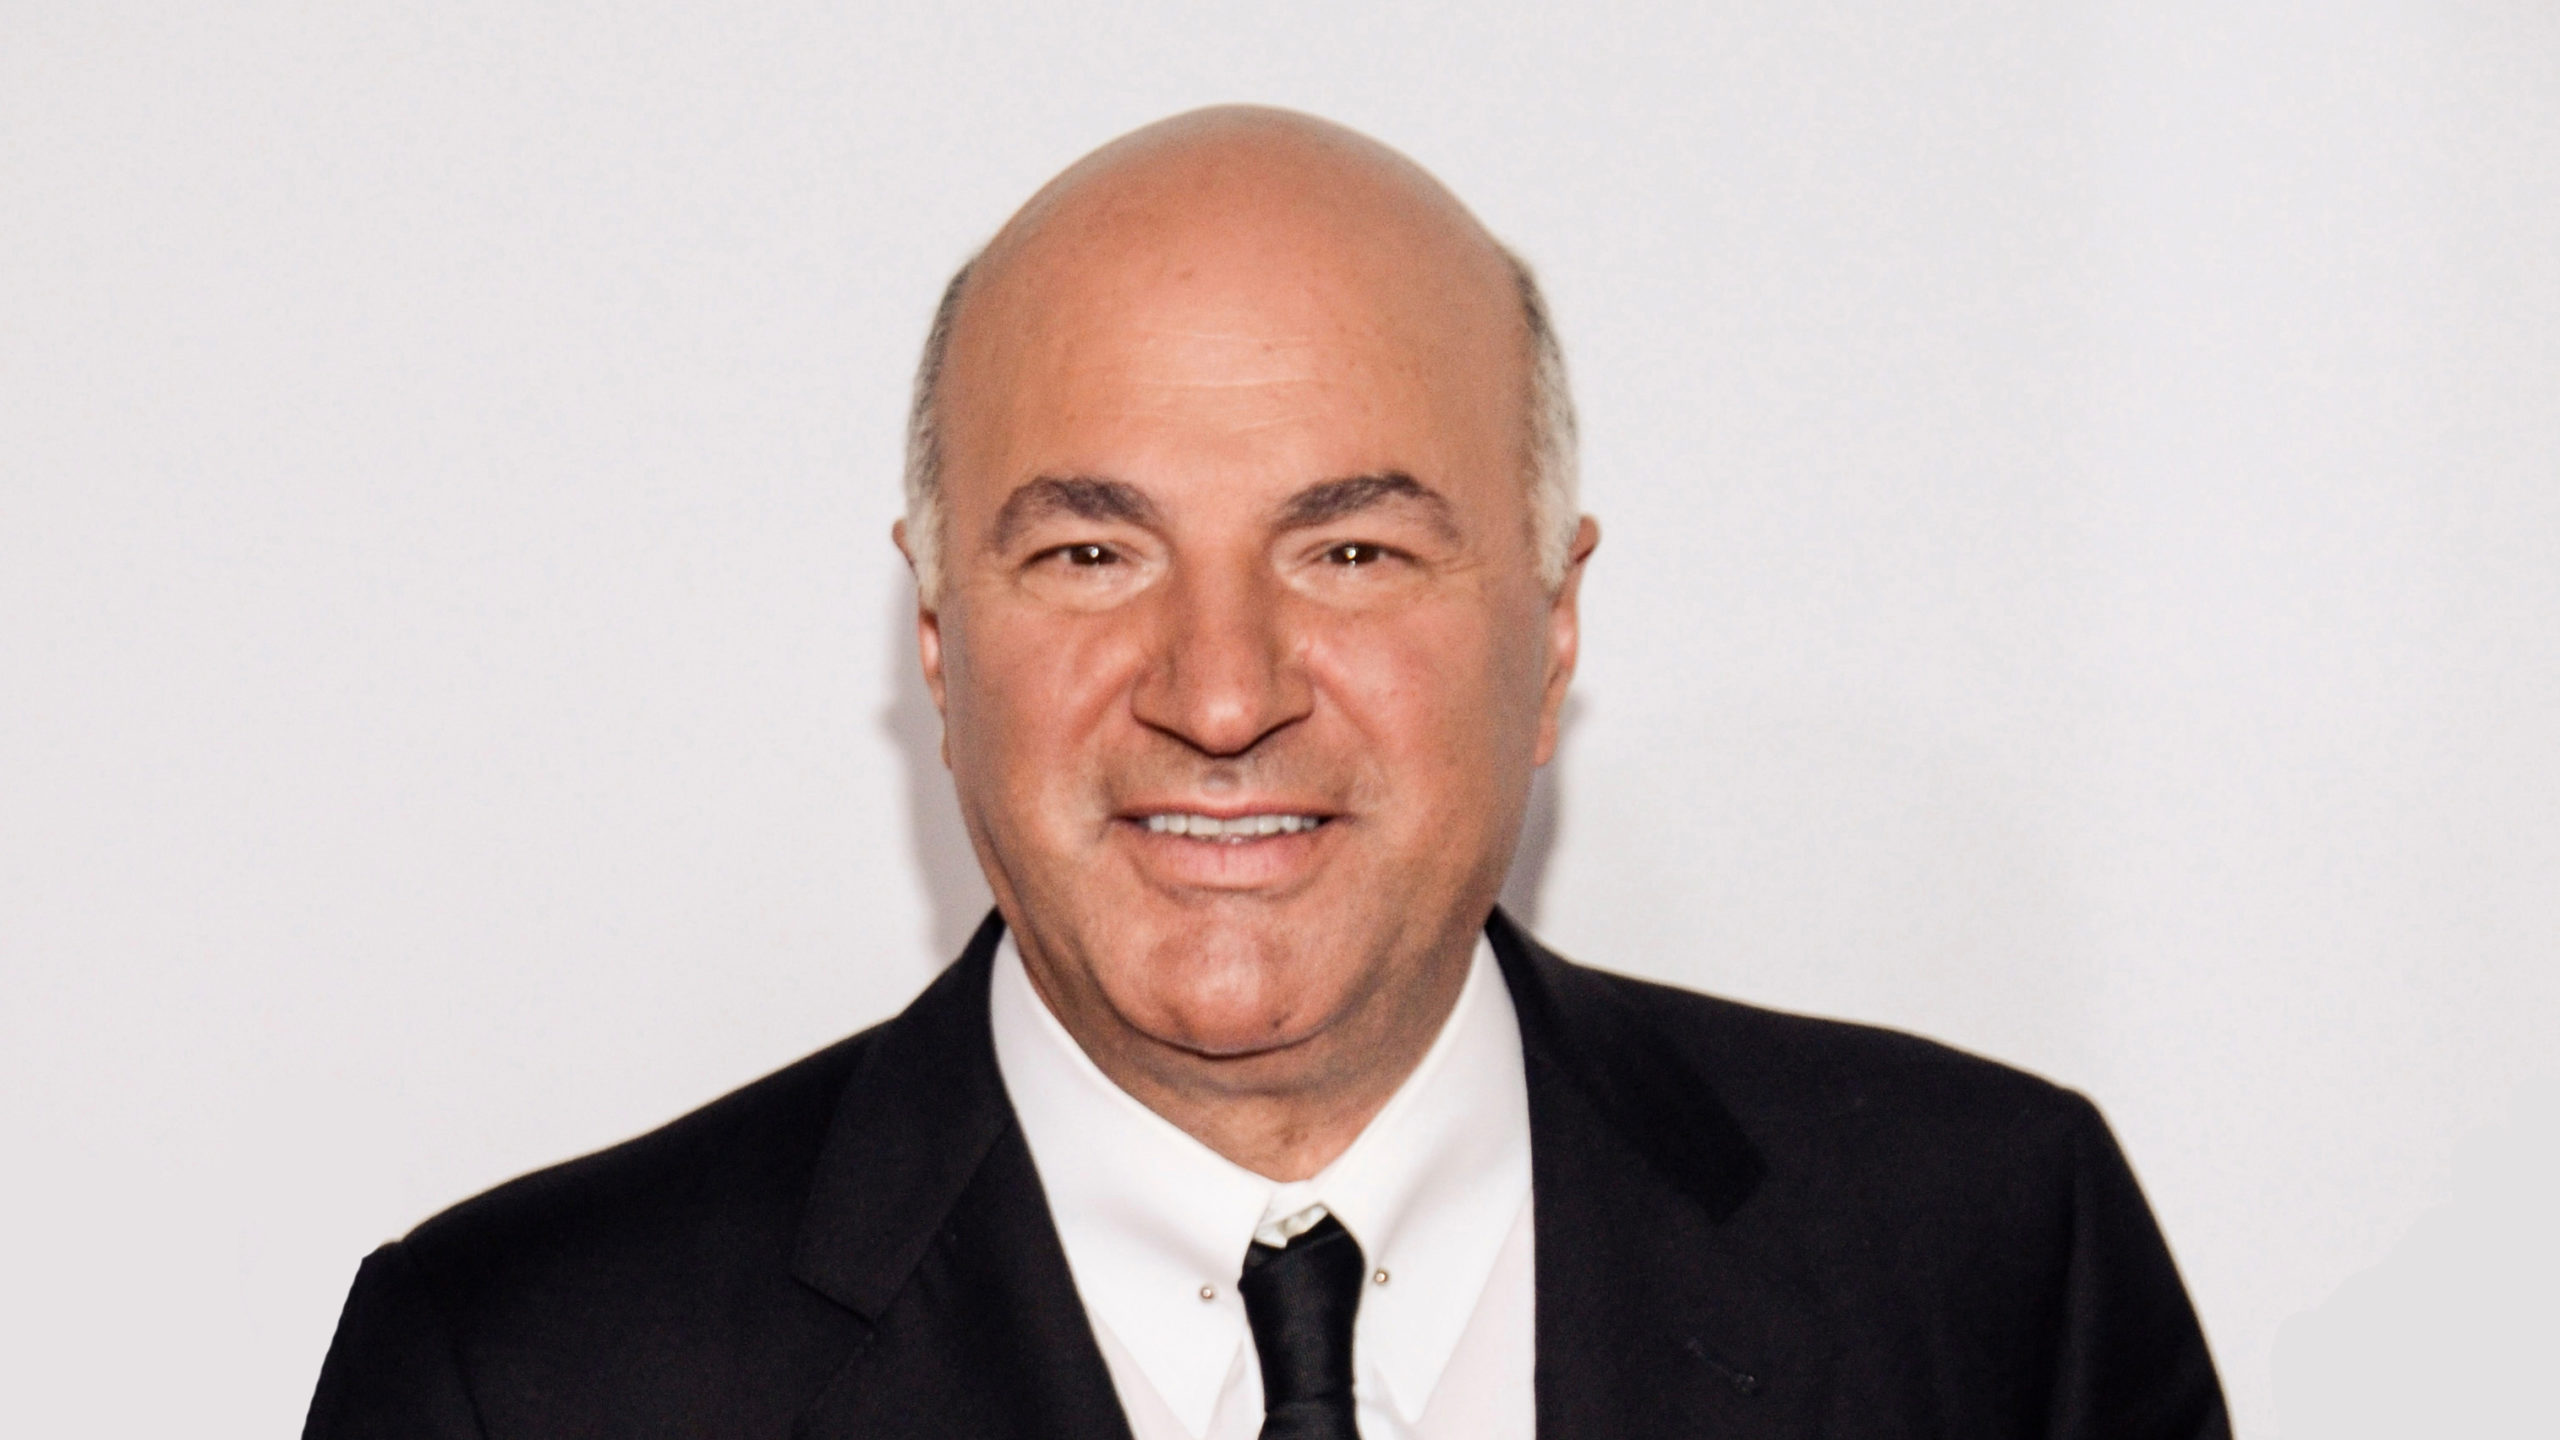 Kevin O'Leary is Investing in an Obscure LSD Company